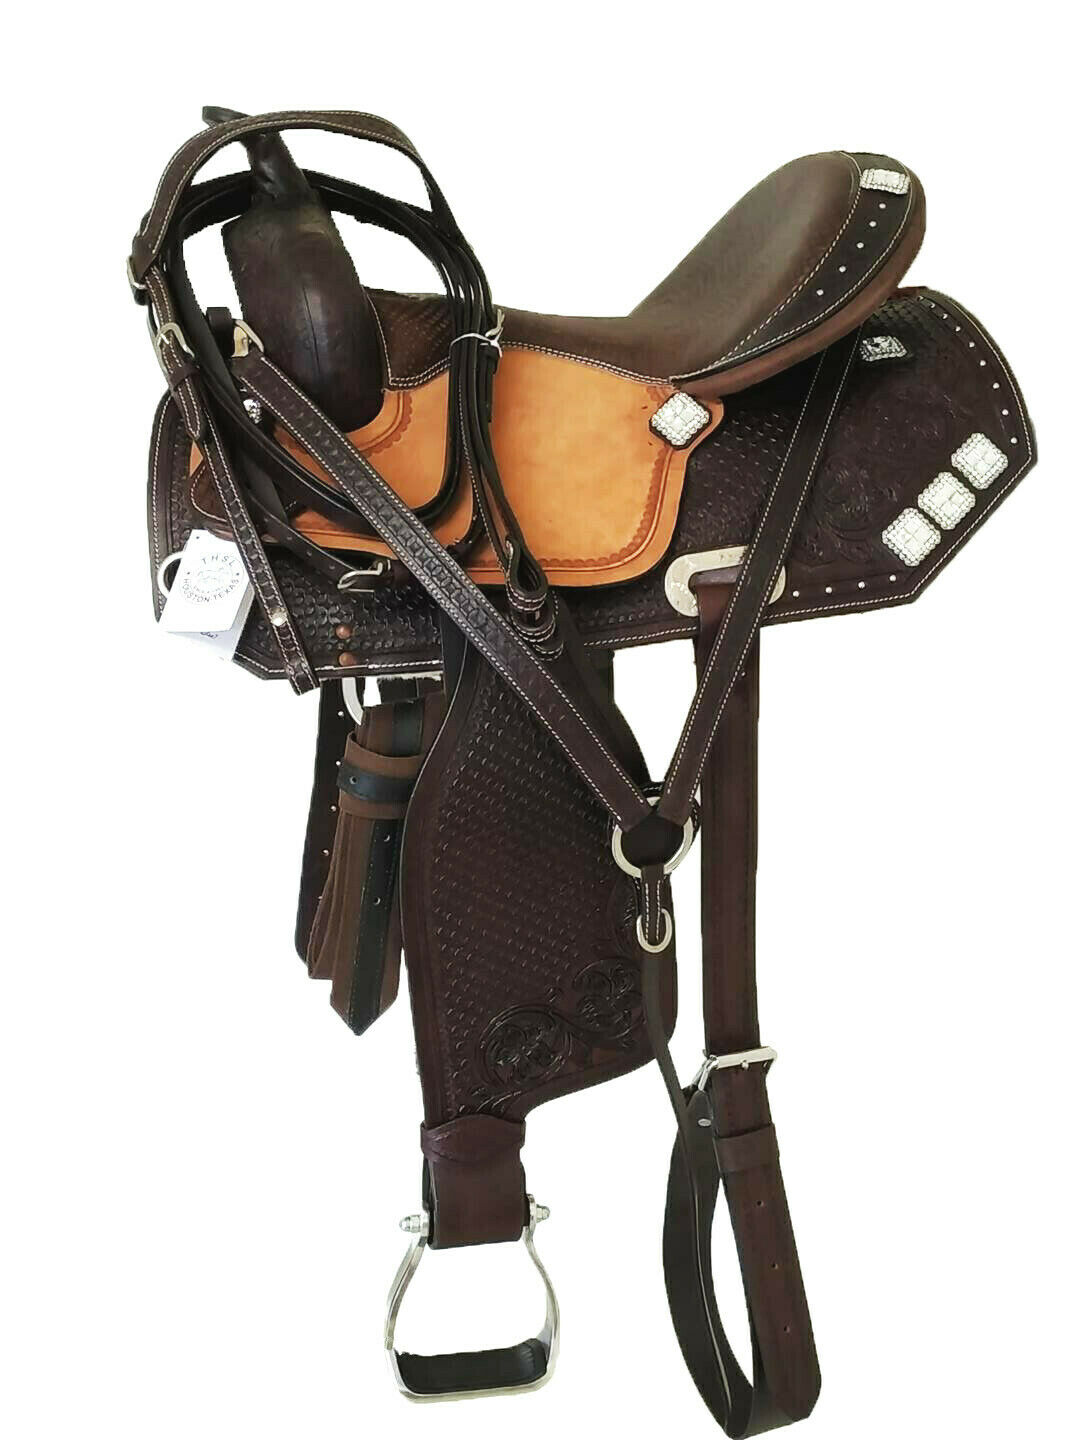 THSL WESTERN BARREL SADDLE NATMarronee 16 FANCY SQUARE CONCHO 1011A